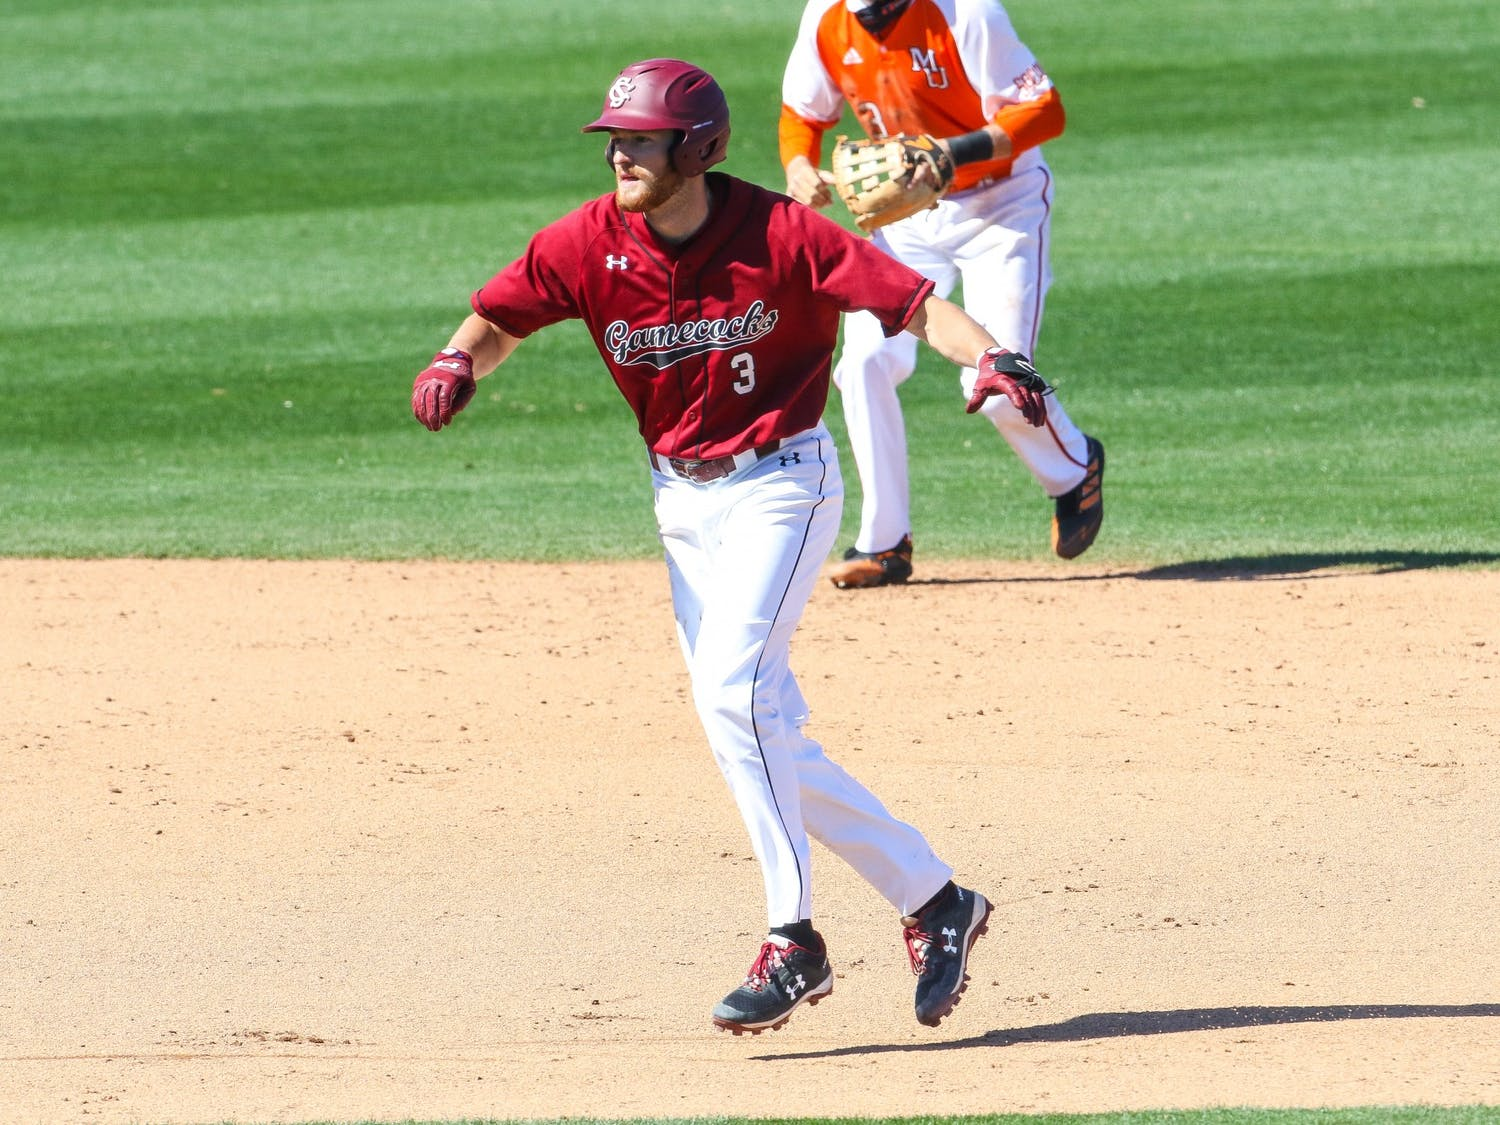 Sophomore second baseman Braylen Wimmer during the game against Mercer. South Carolina won 1-0 in the series' third game on Sunday, March 7, 2021.